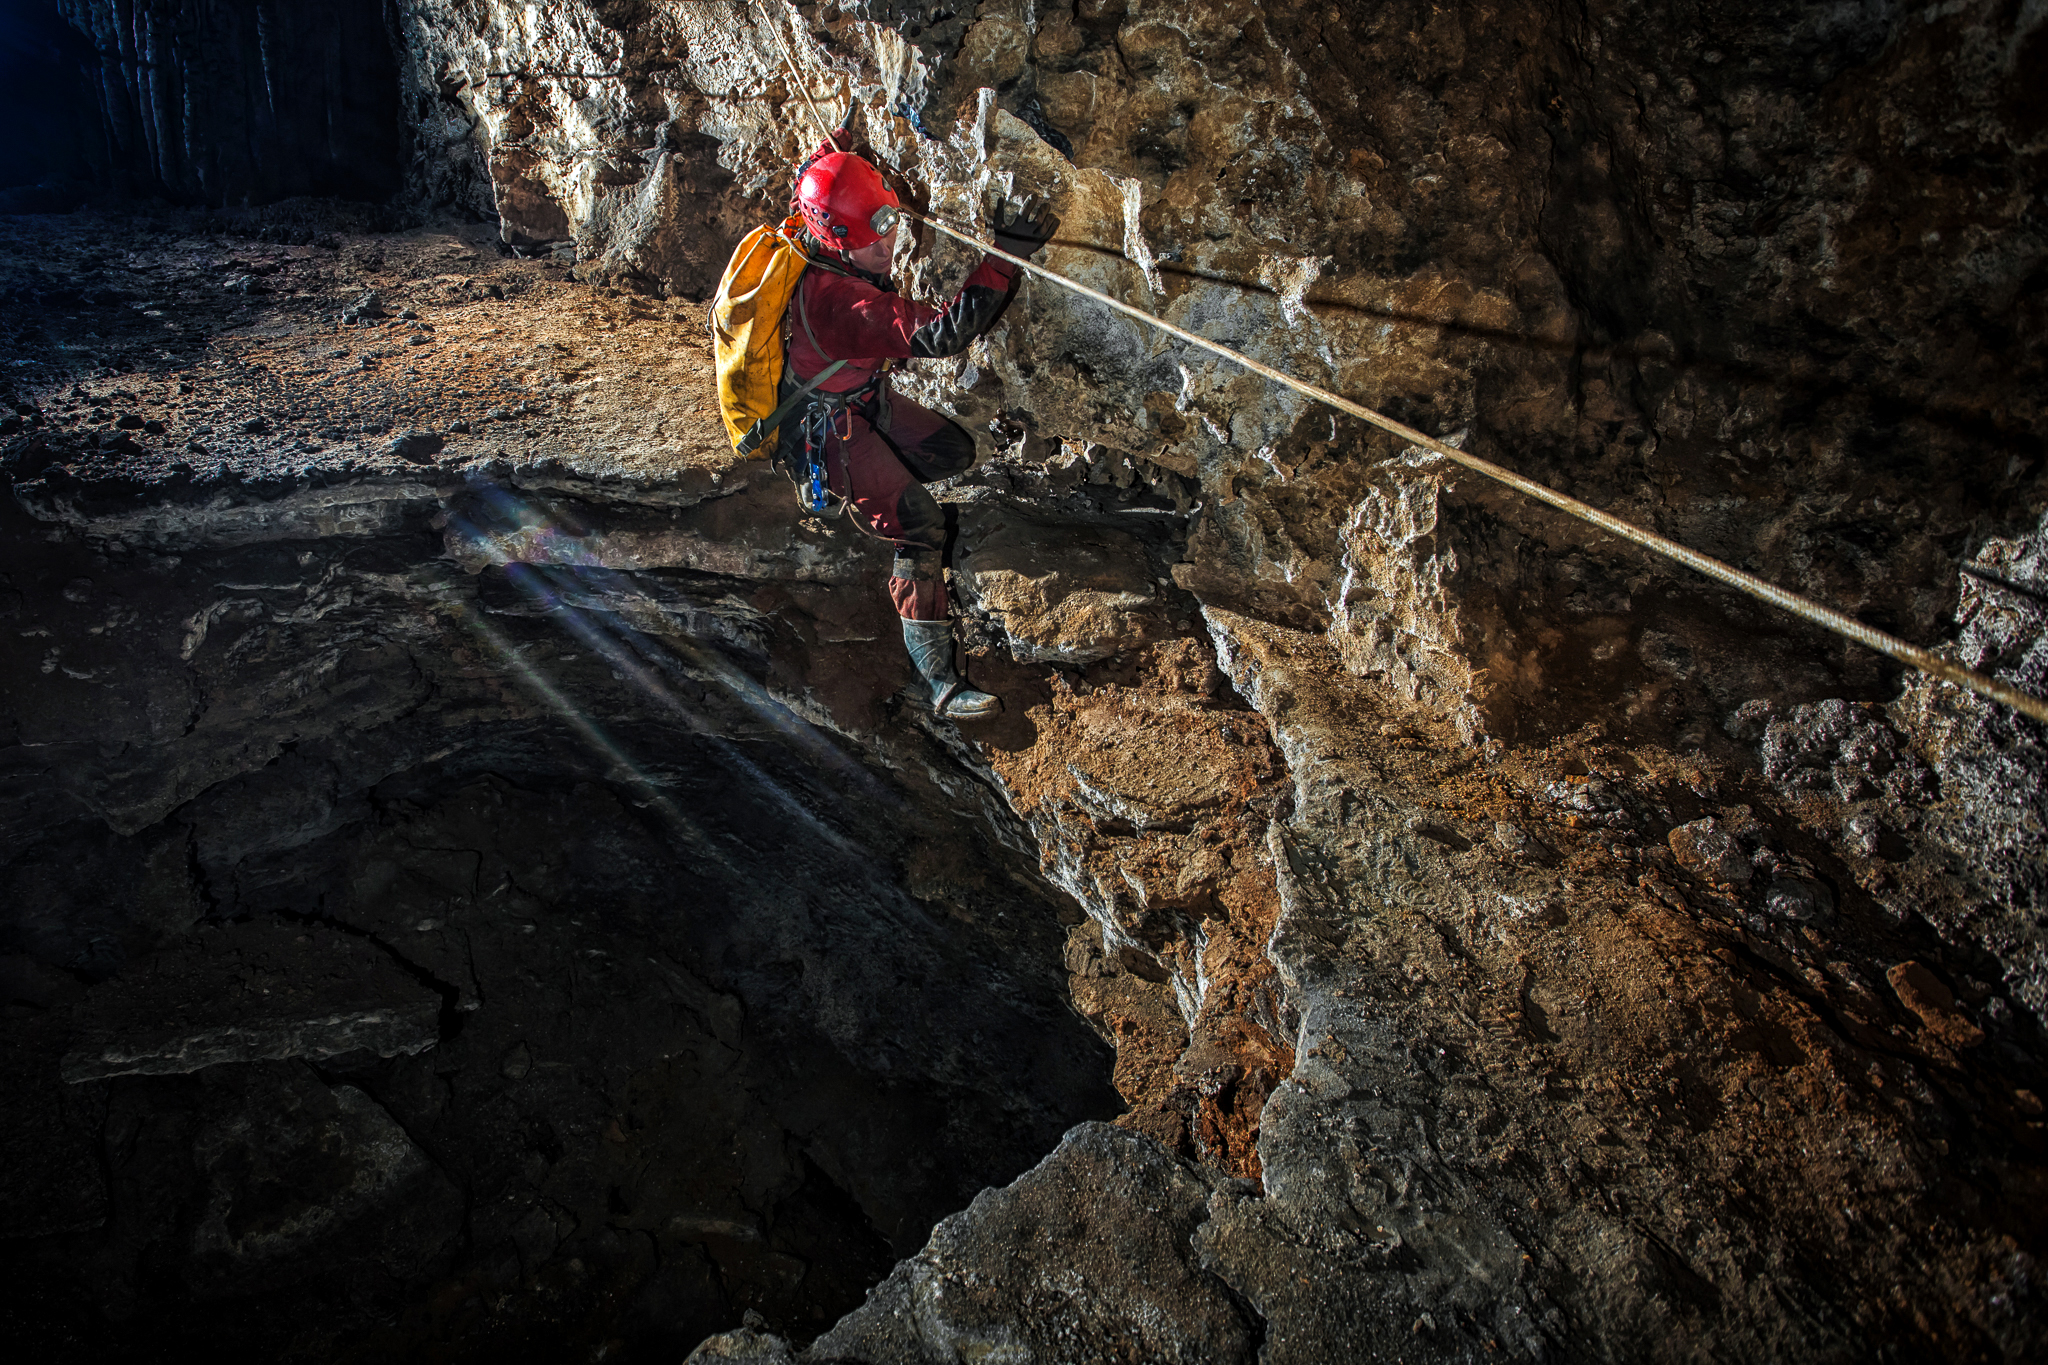 07_KasiaBiernacka_Caves_Mexico_Cheve_SurpriseStreamLead_2_2017.jpg